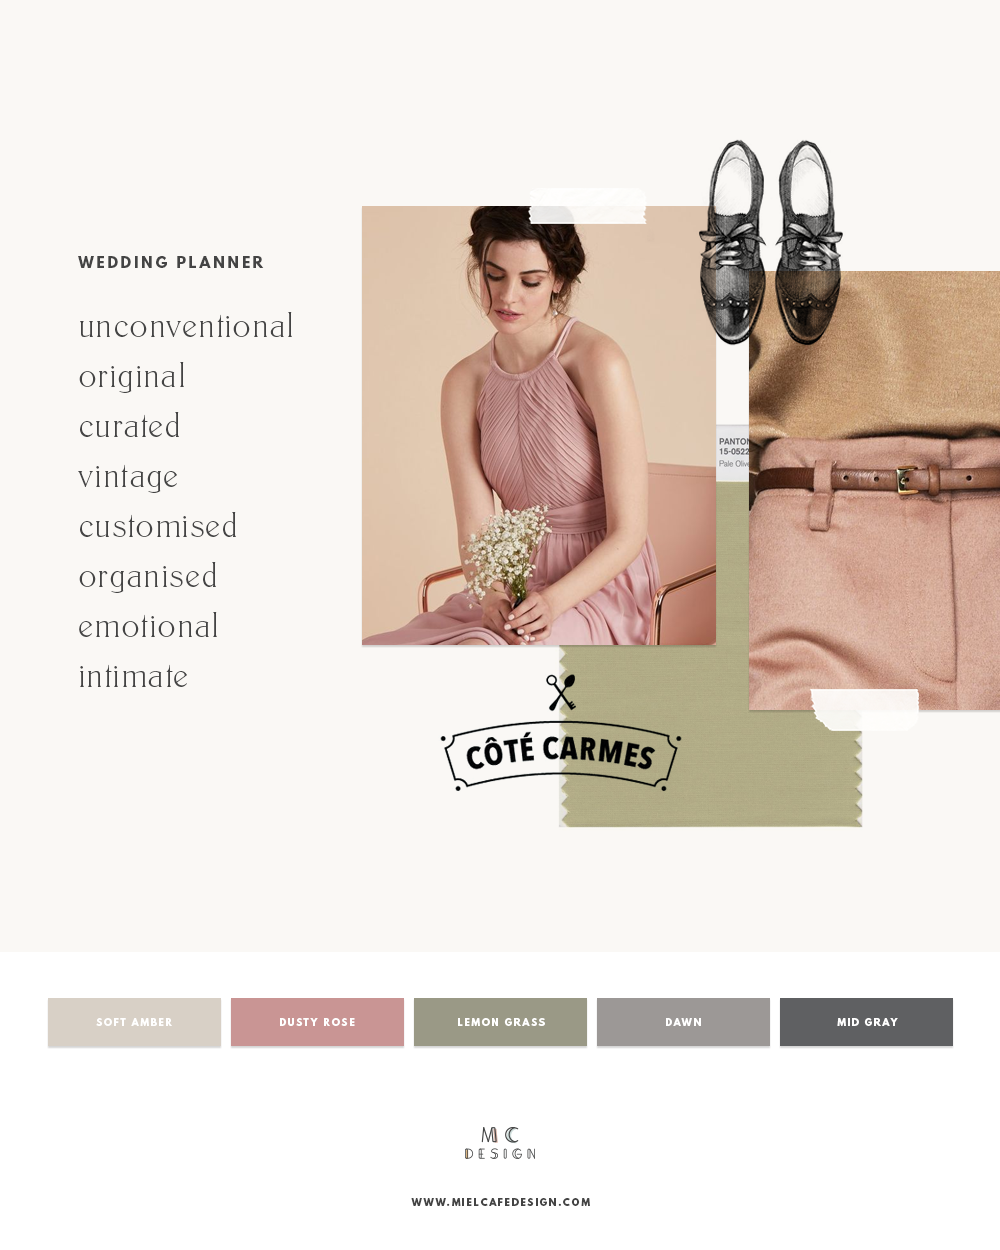 How to create your wedding planner brand - Visualise: unconventional, original, intimate, vintage wedding planner mood board and color palette